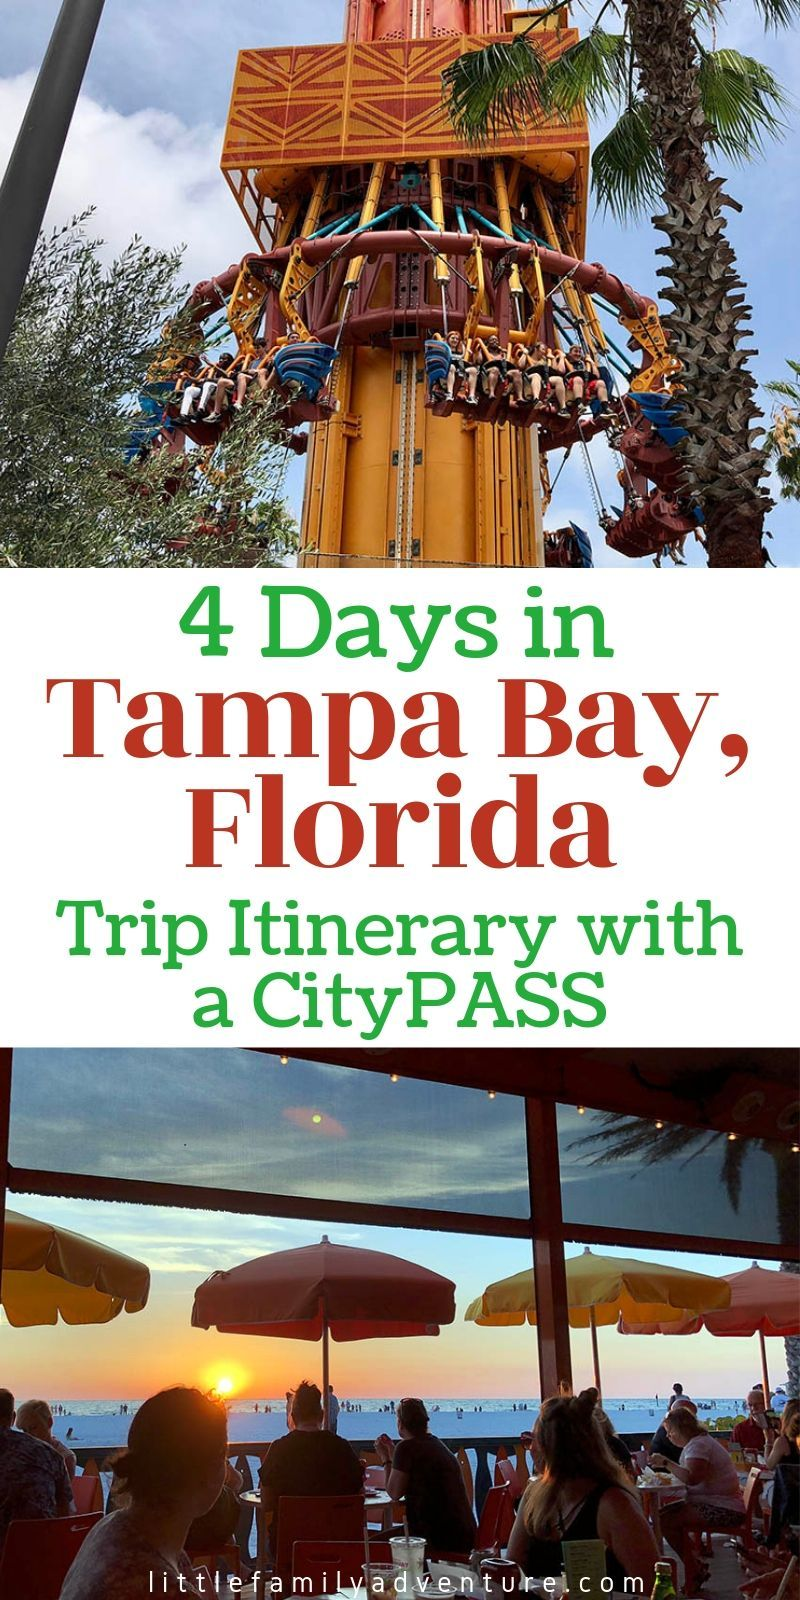 2a0a34a112eff34e2300e34d2ab6f409 - How Many Days Does It Take To Get To Florida